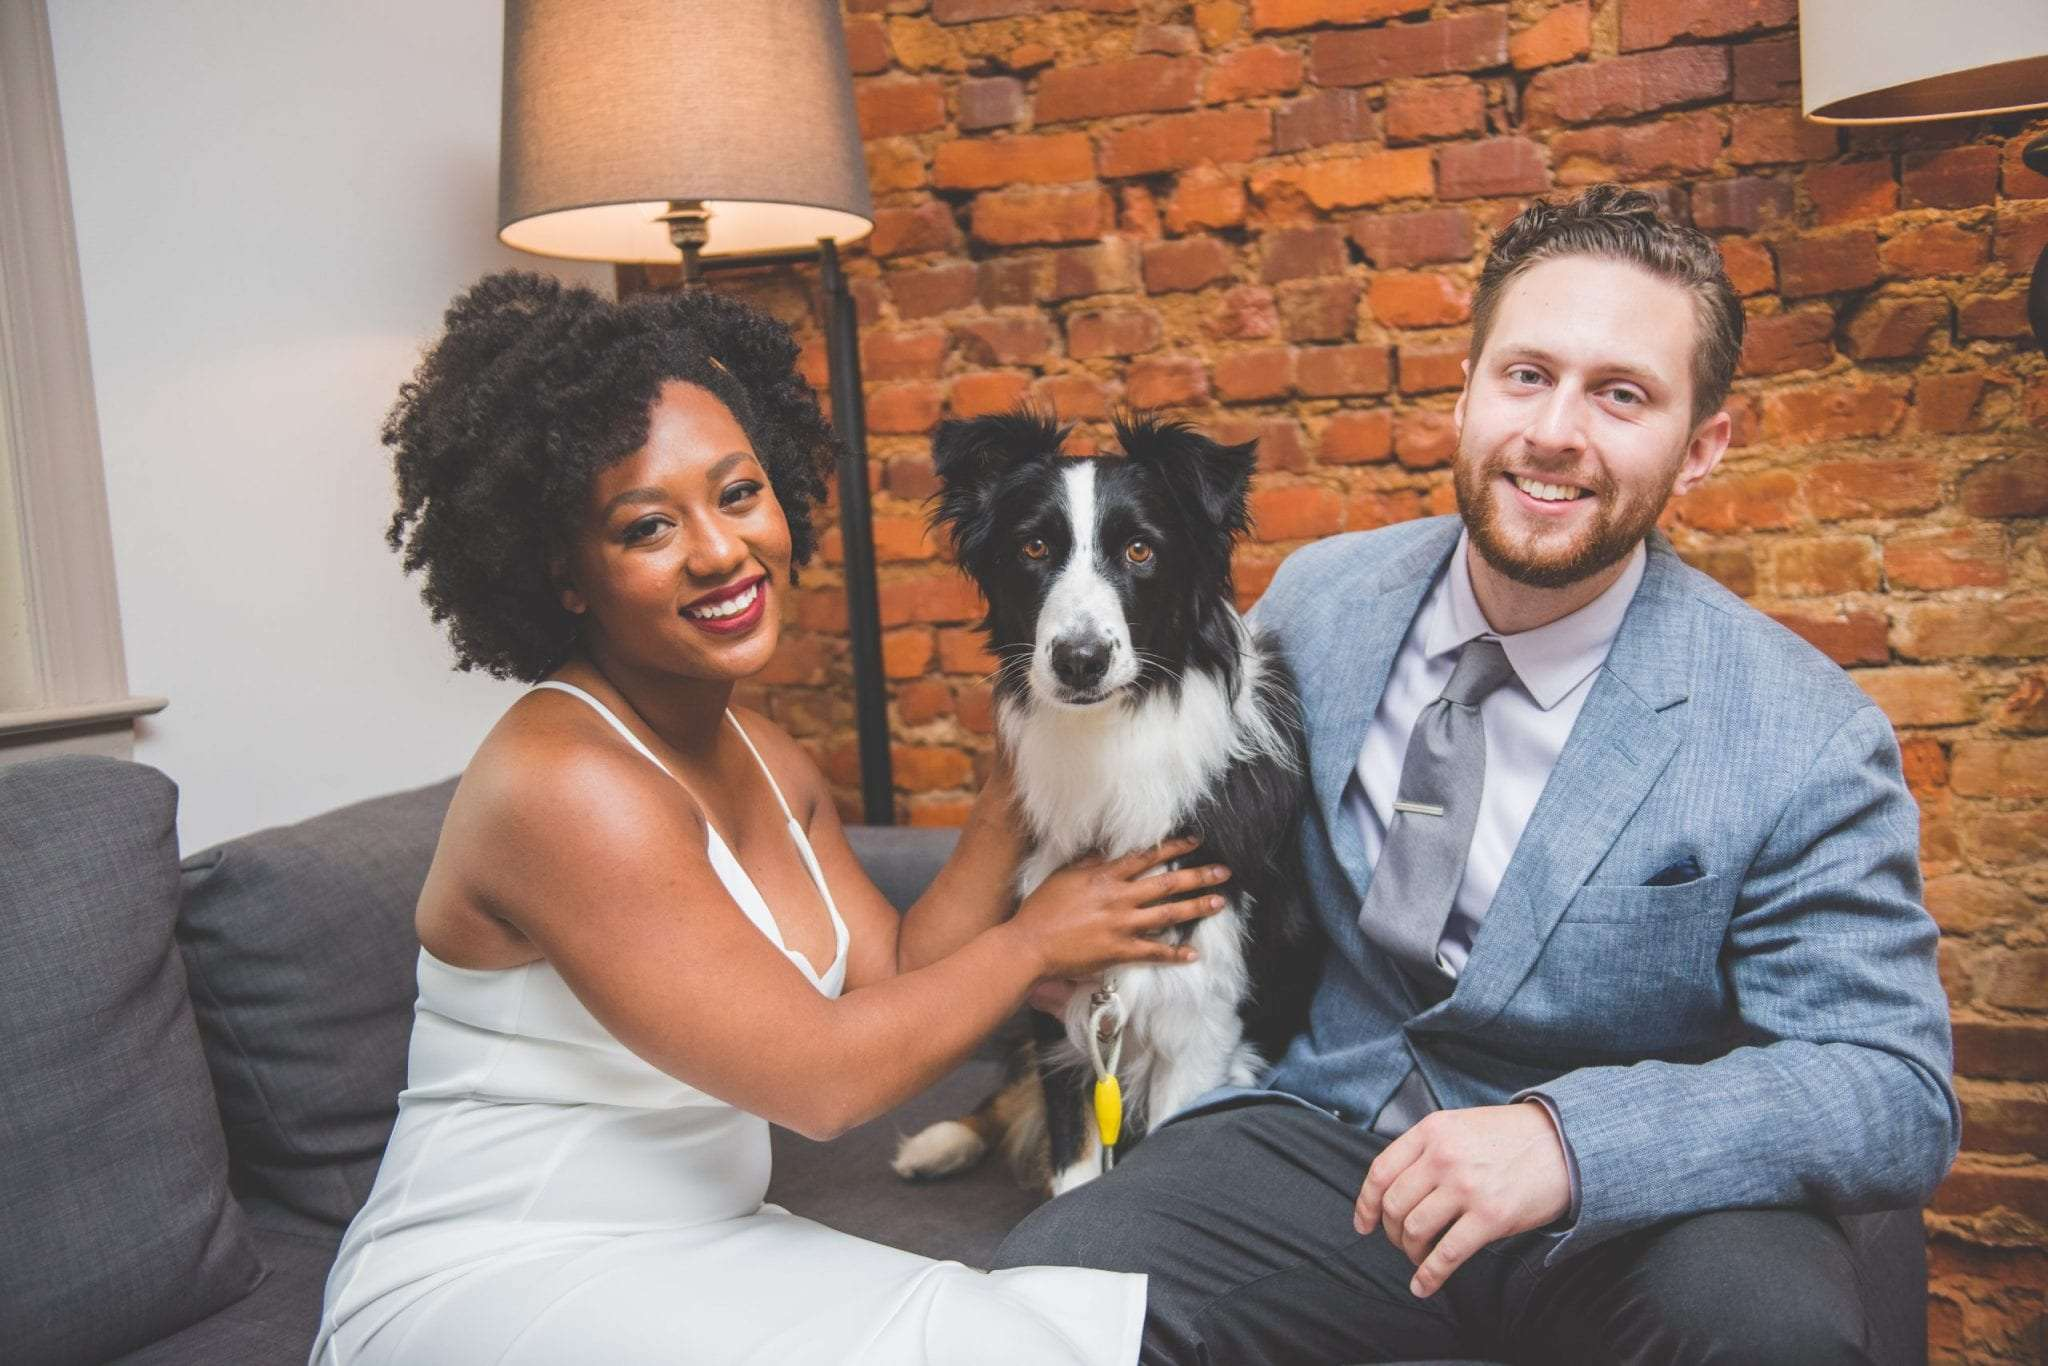 NJ backyard Micro wedding portrait with dog